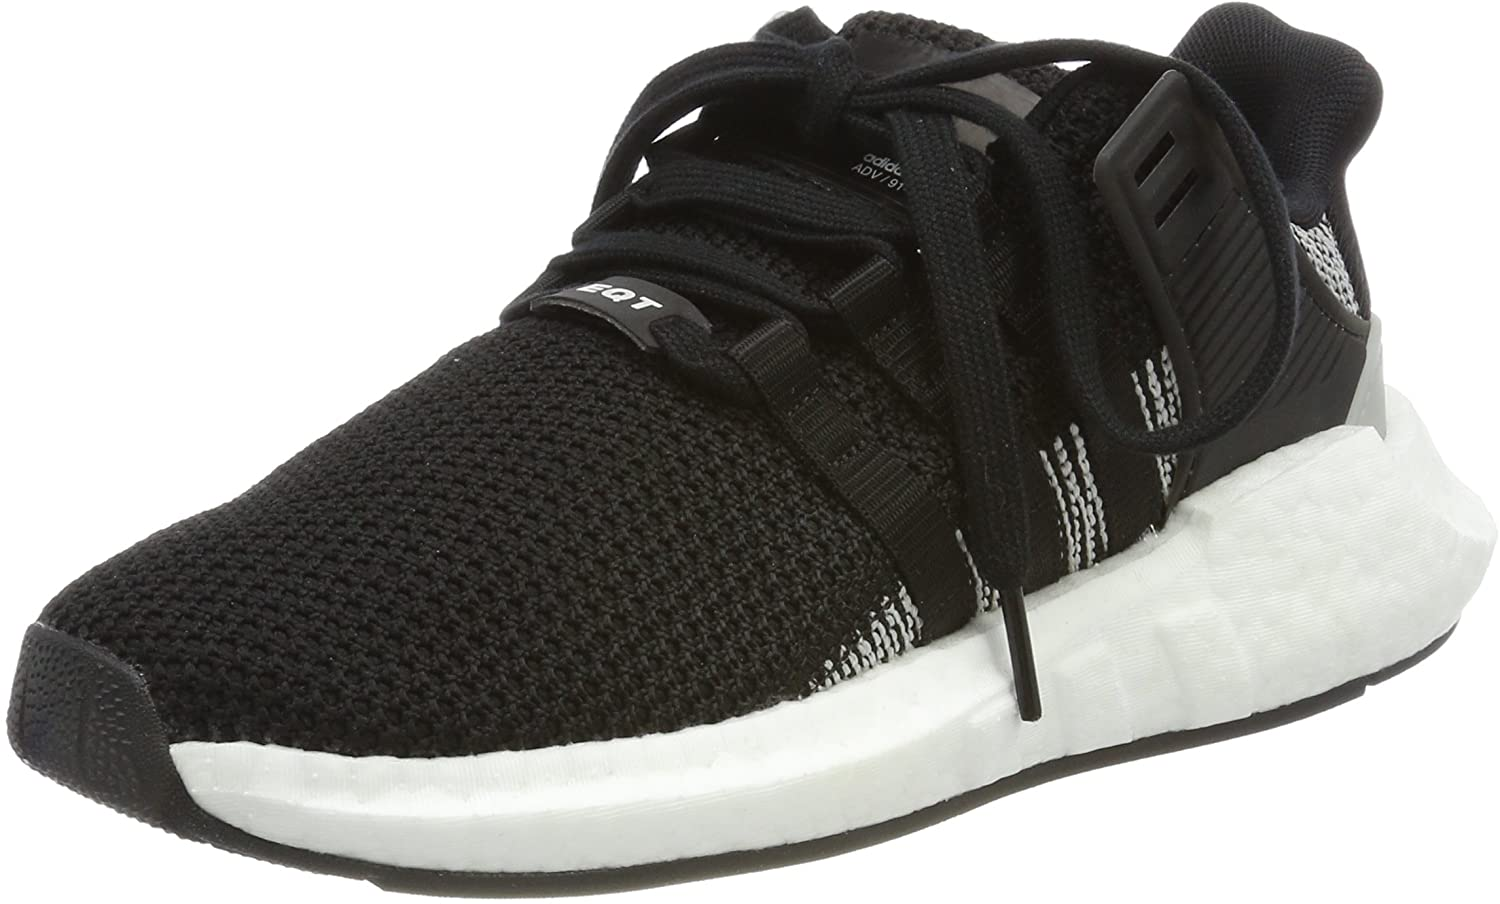 Adidas Unisex Adults' EQT Support 93 17 Low-Top Sneakers